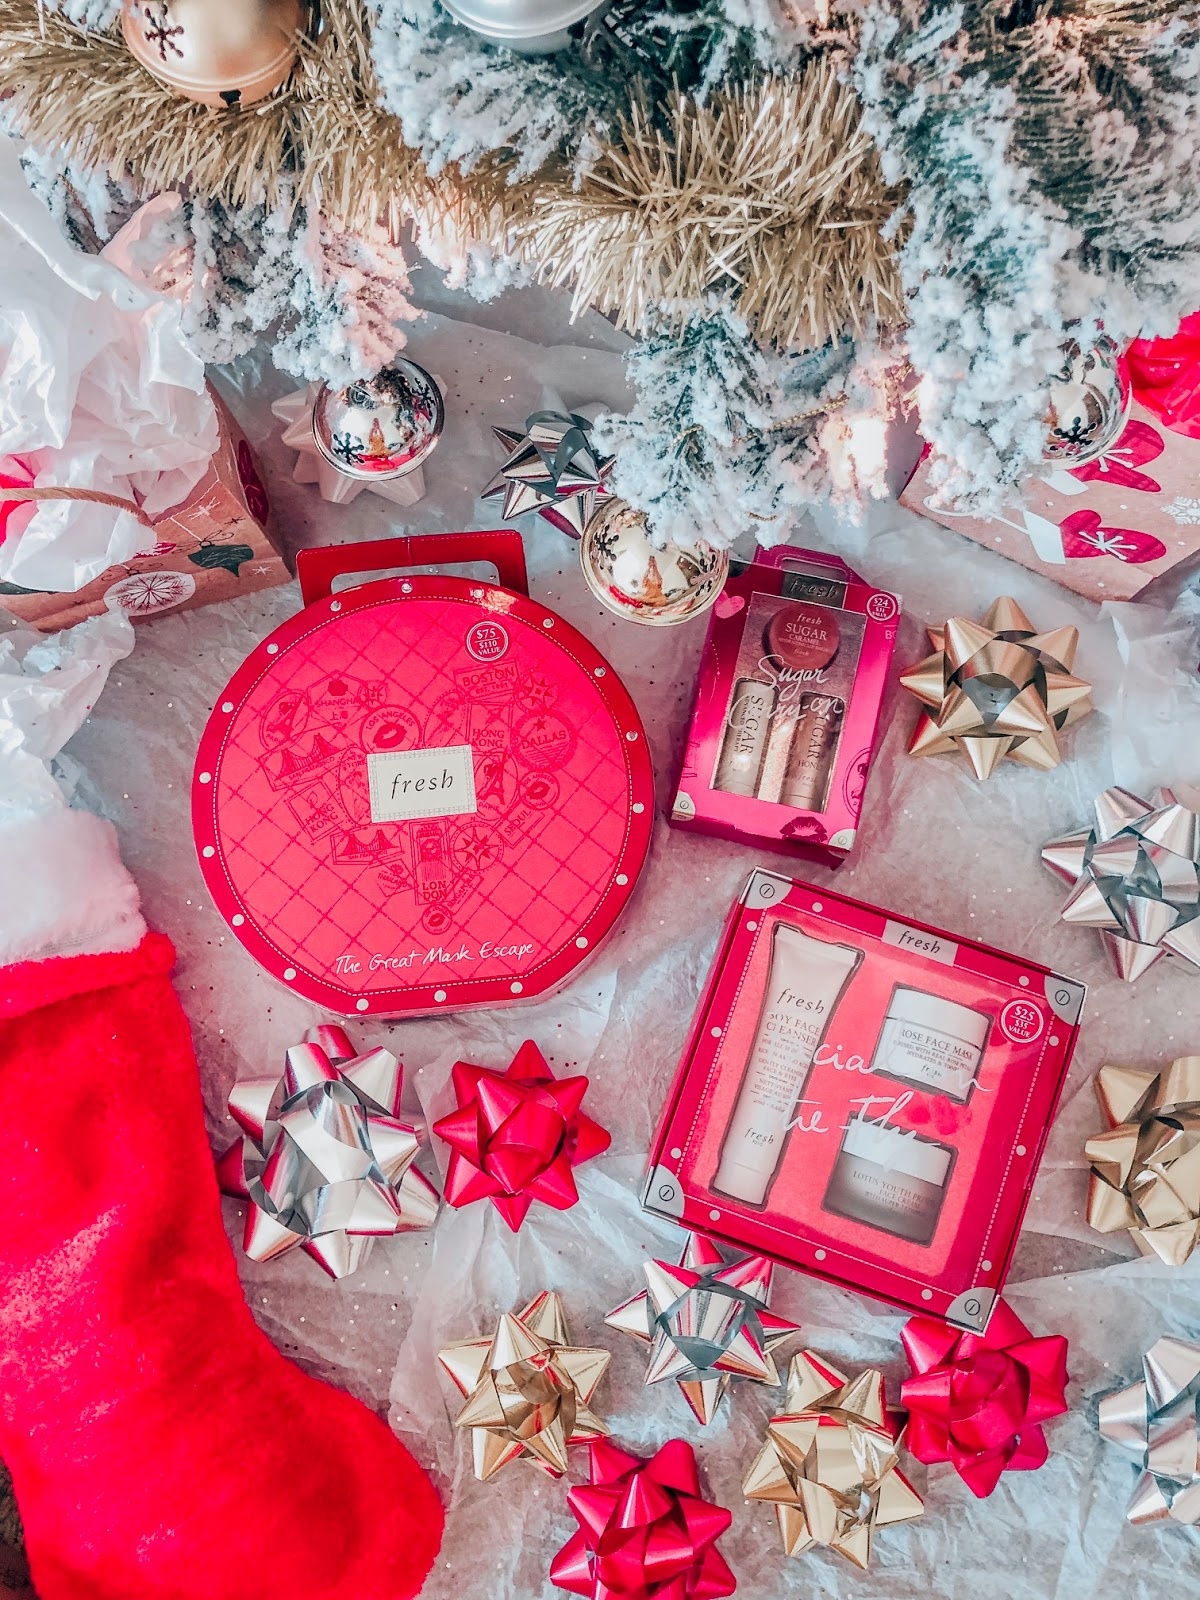 Christmas Beauty Gift Sets.Simply Classy My Favorite Beauty Gift Sets